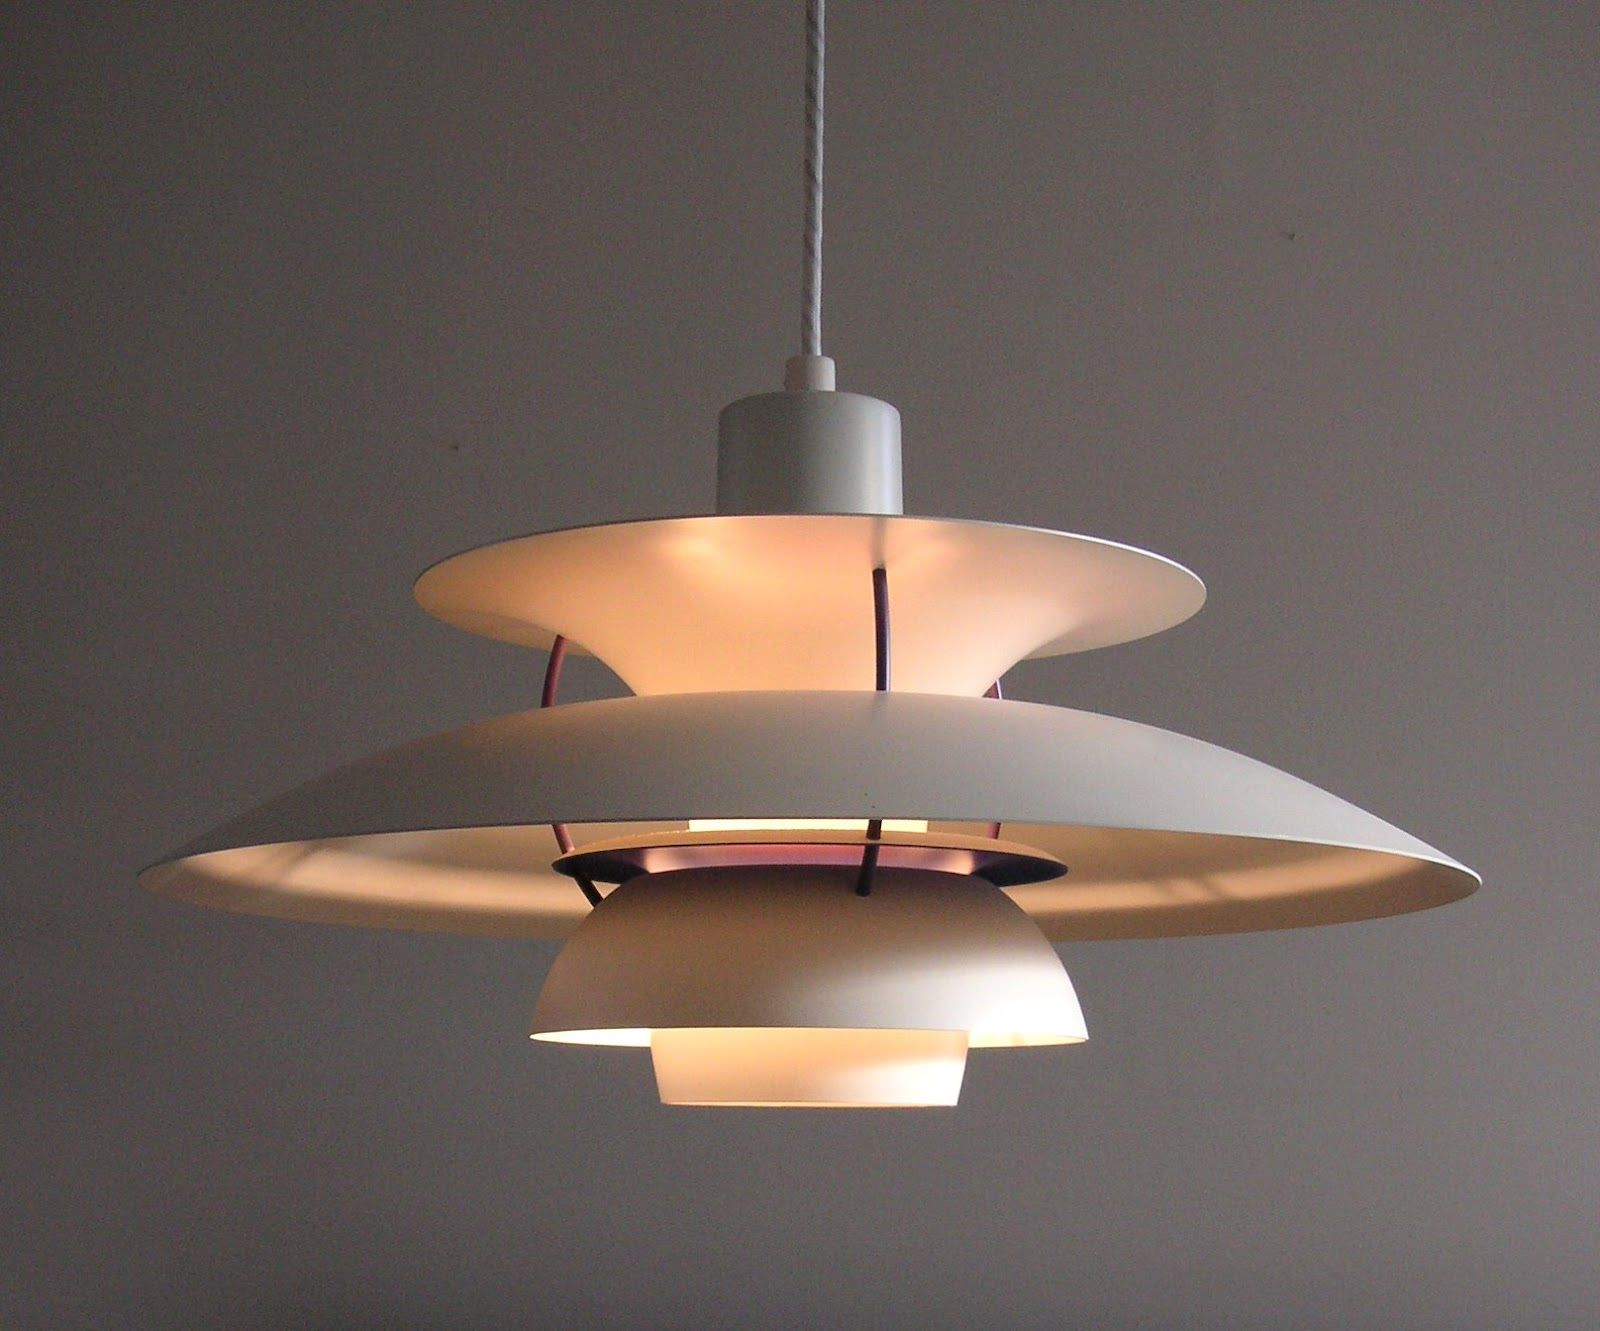 Modern Dining Room Light Fixture With Unique Shape Of Three Level Lamp Model Lampen Lampendesign Design Lampen